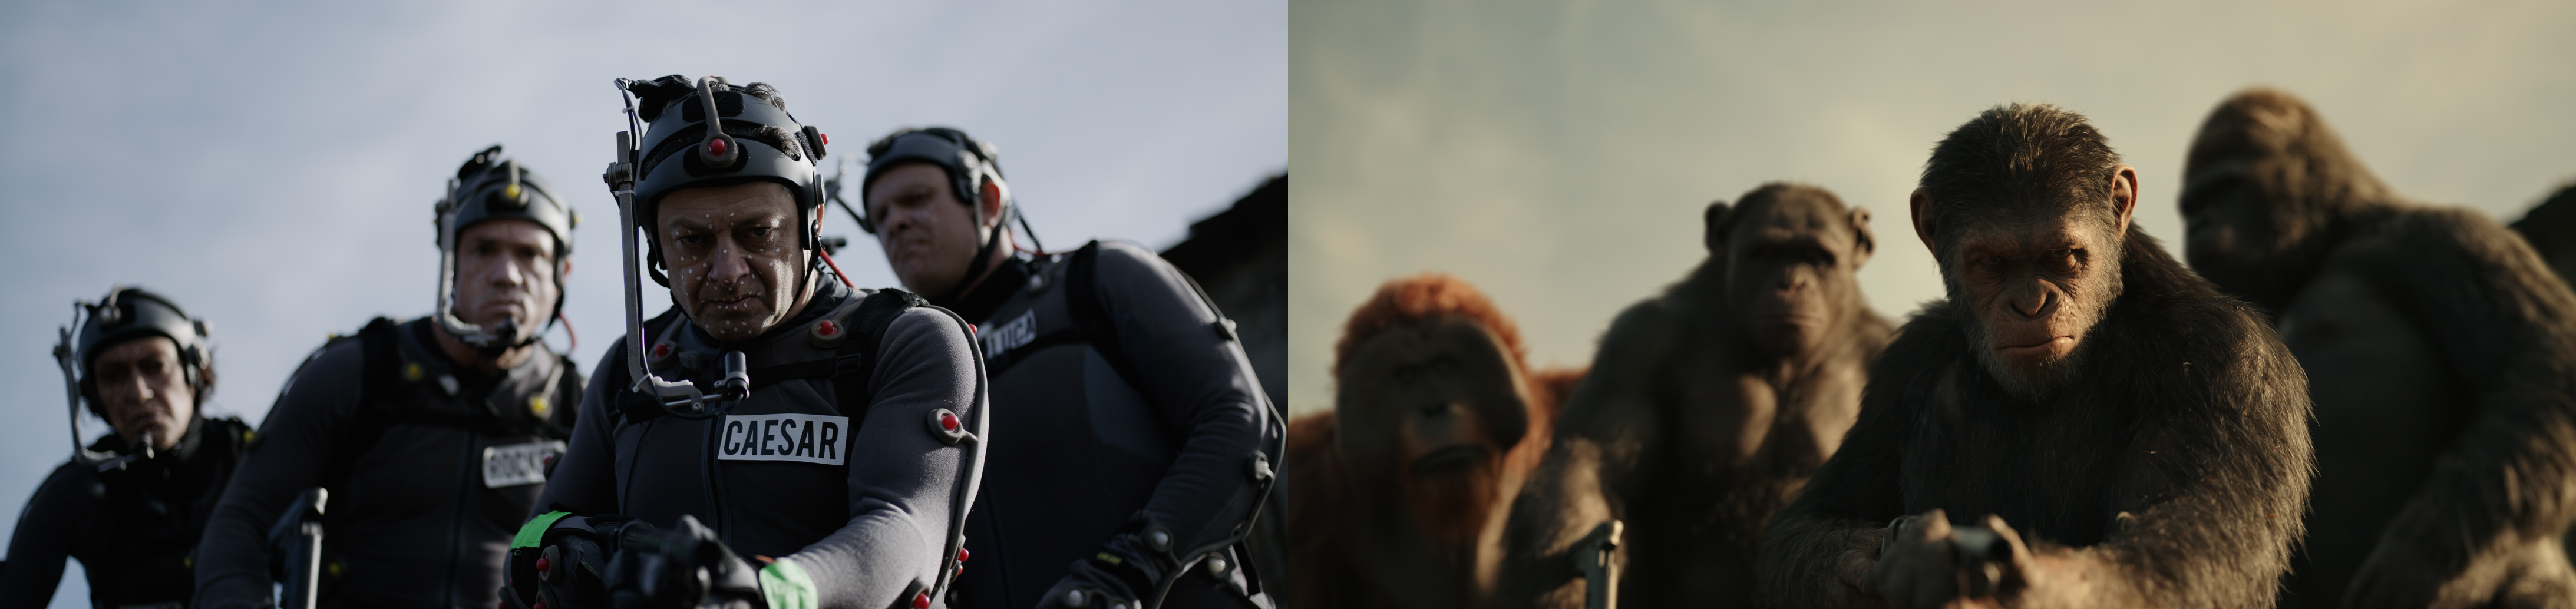 a comparison of setting in the book and in the movie planet of the apes The continuing success of this series is undeniable since 21 st century took over in 2001, each movie continues to earn more than the last one the latest in the series dawn of the planet of the apes received across the board rave reviews from critics, and a 91% on rotten tomatoes.